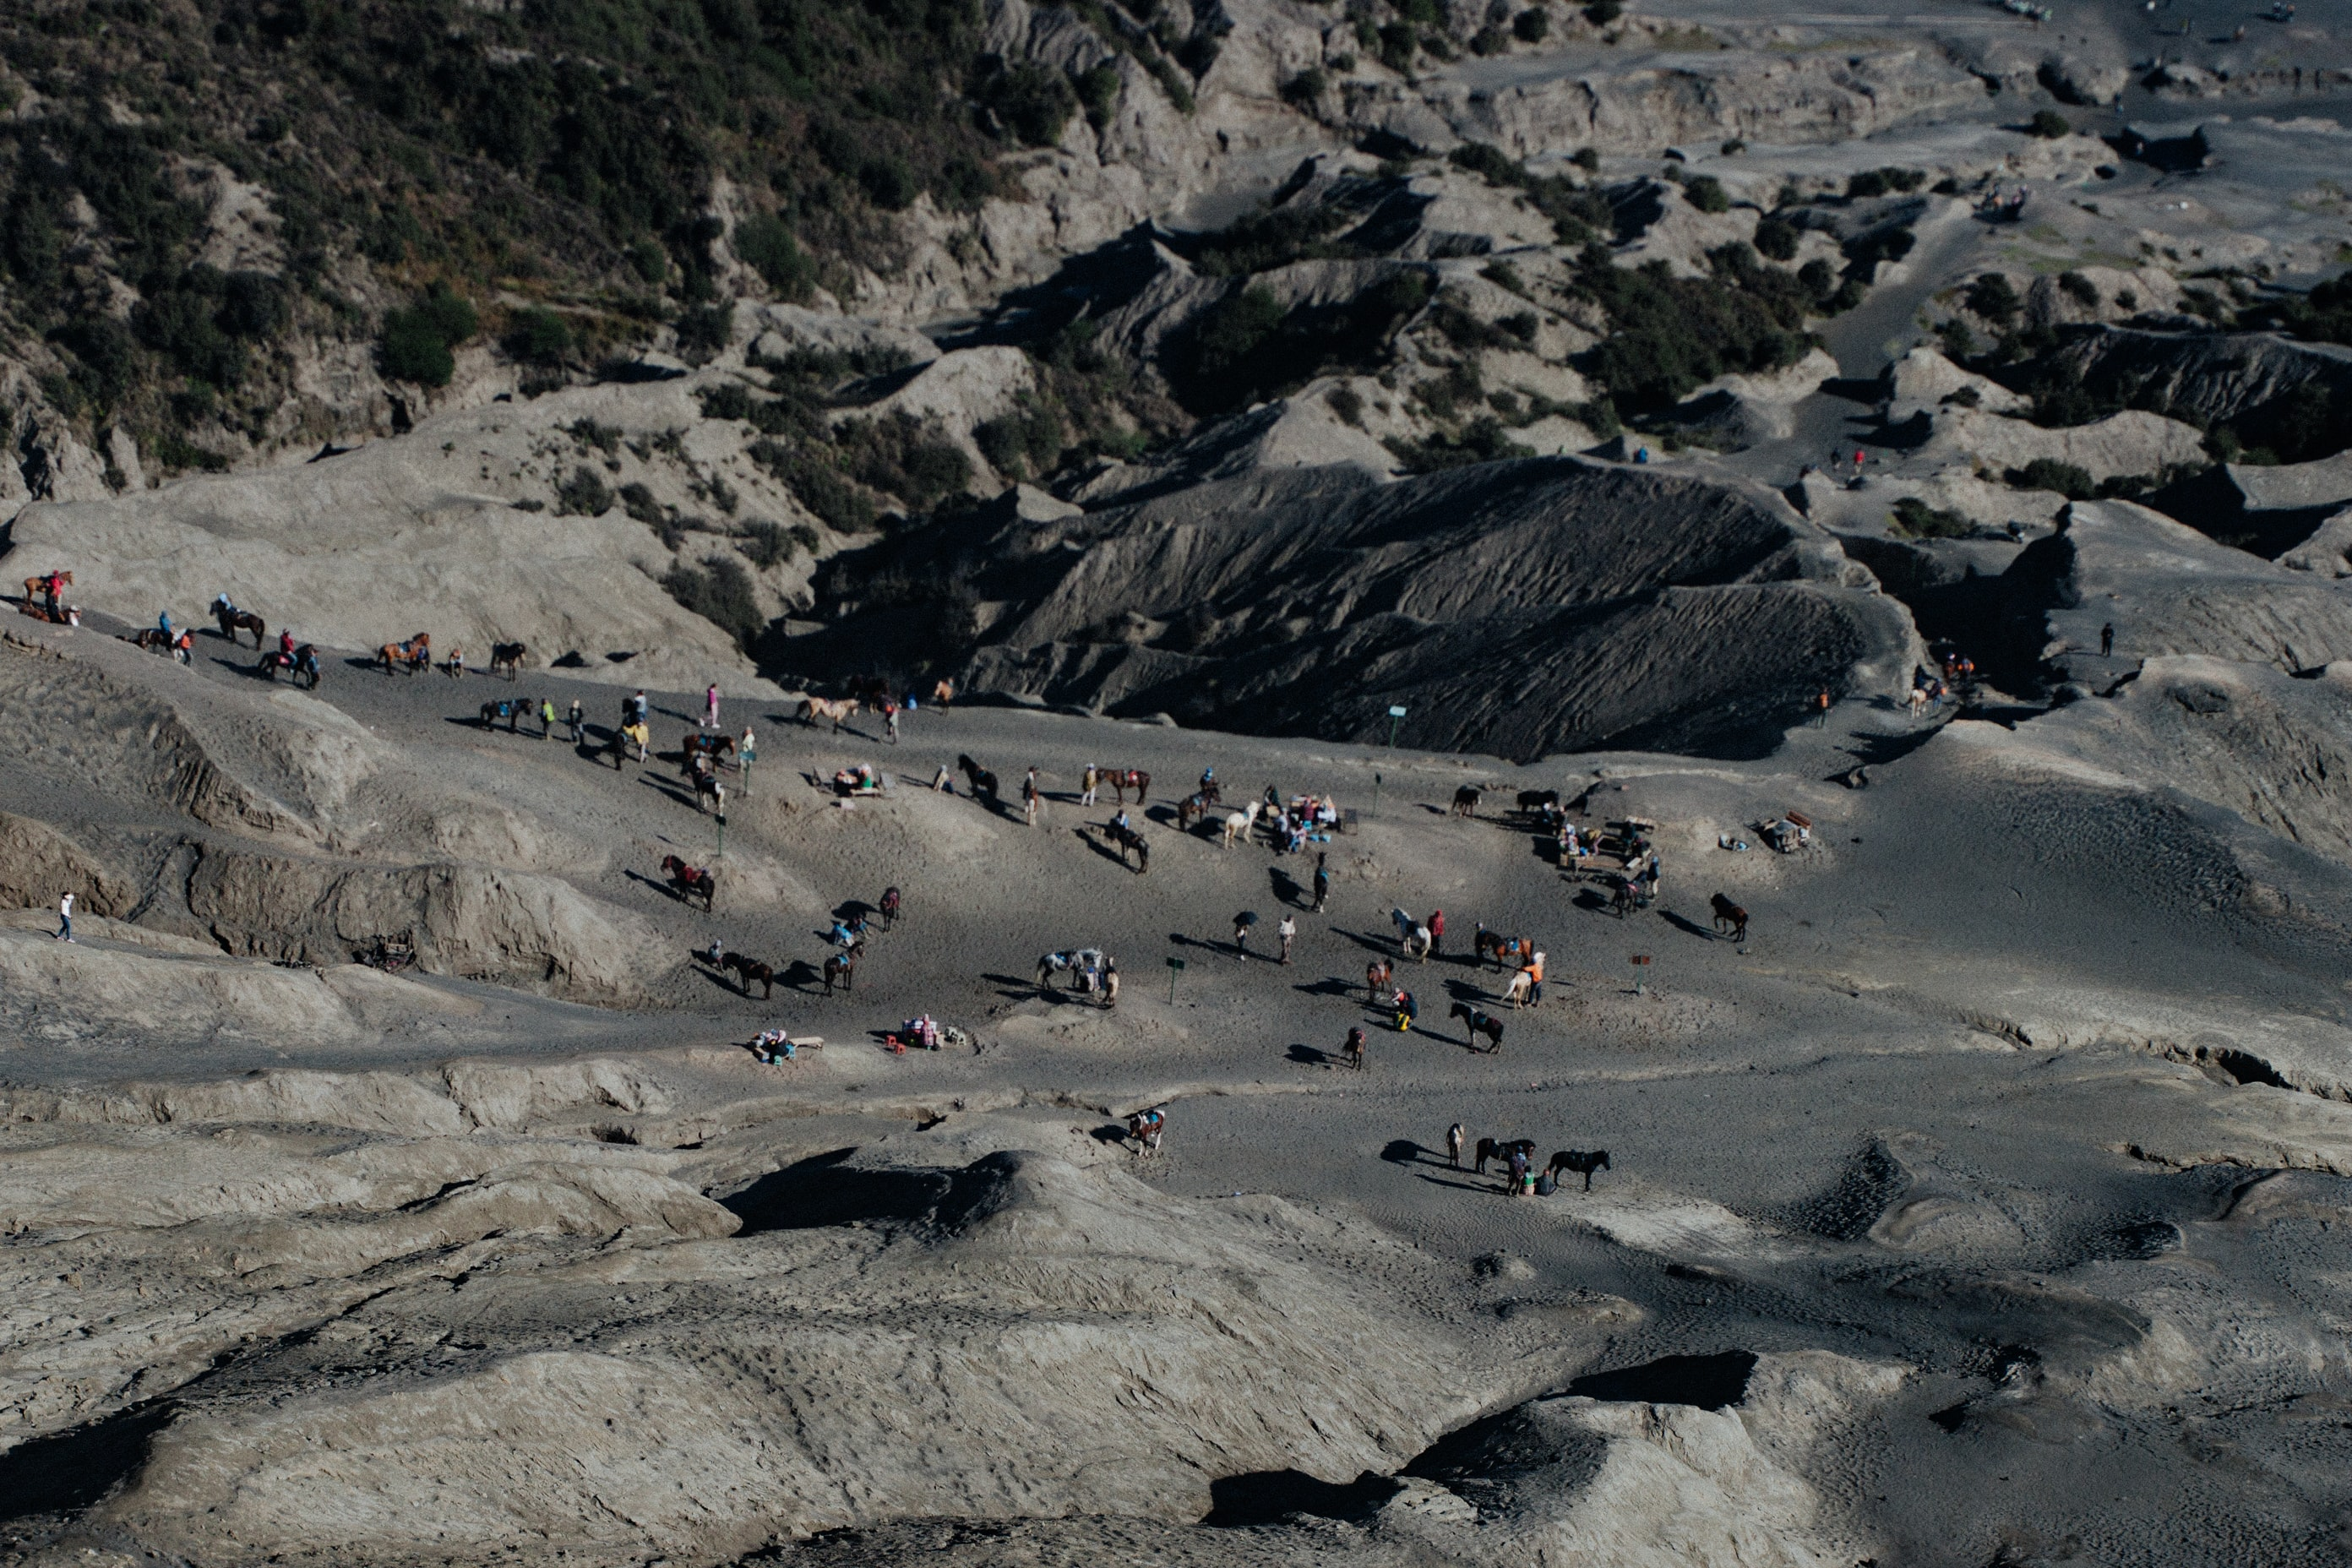 A high shot of a group of people and horses on the rocky slope of a mountain